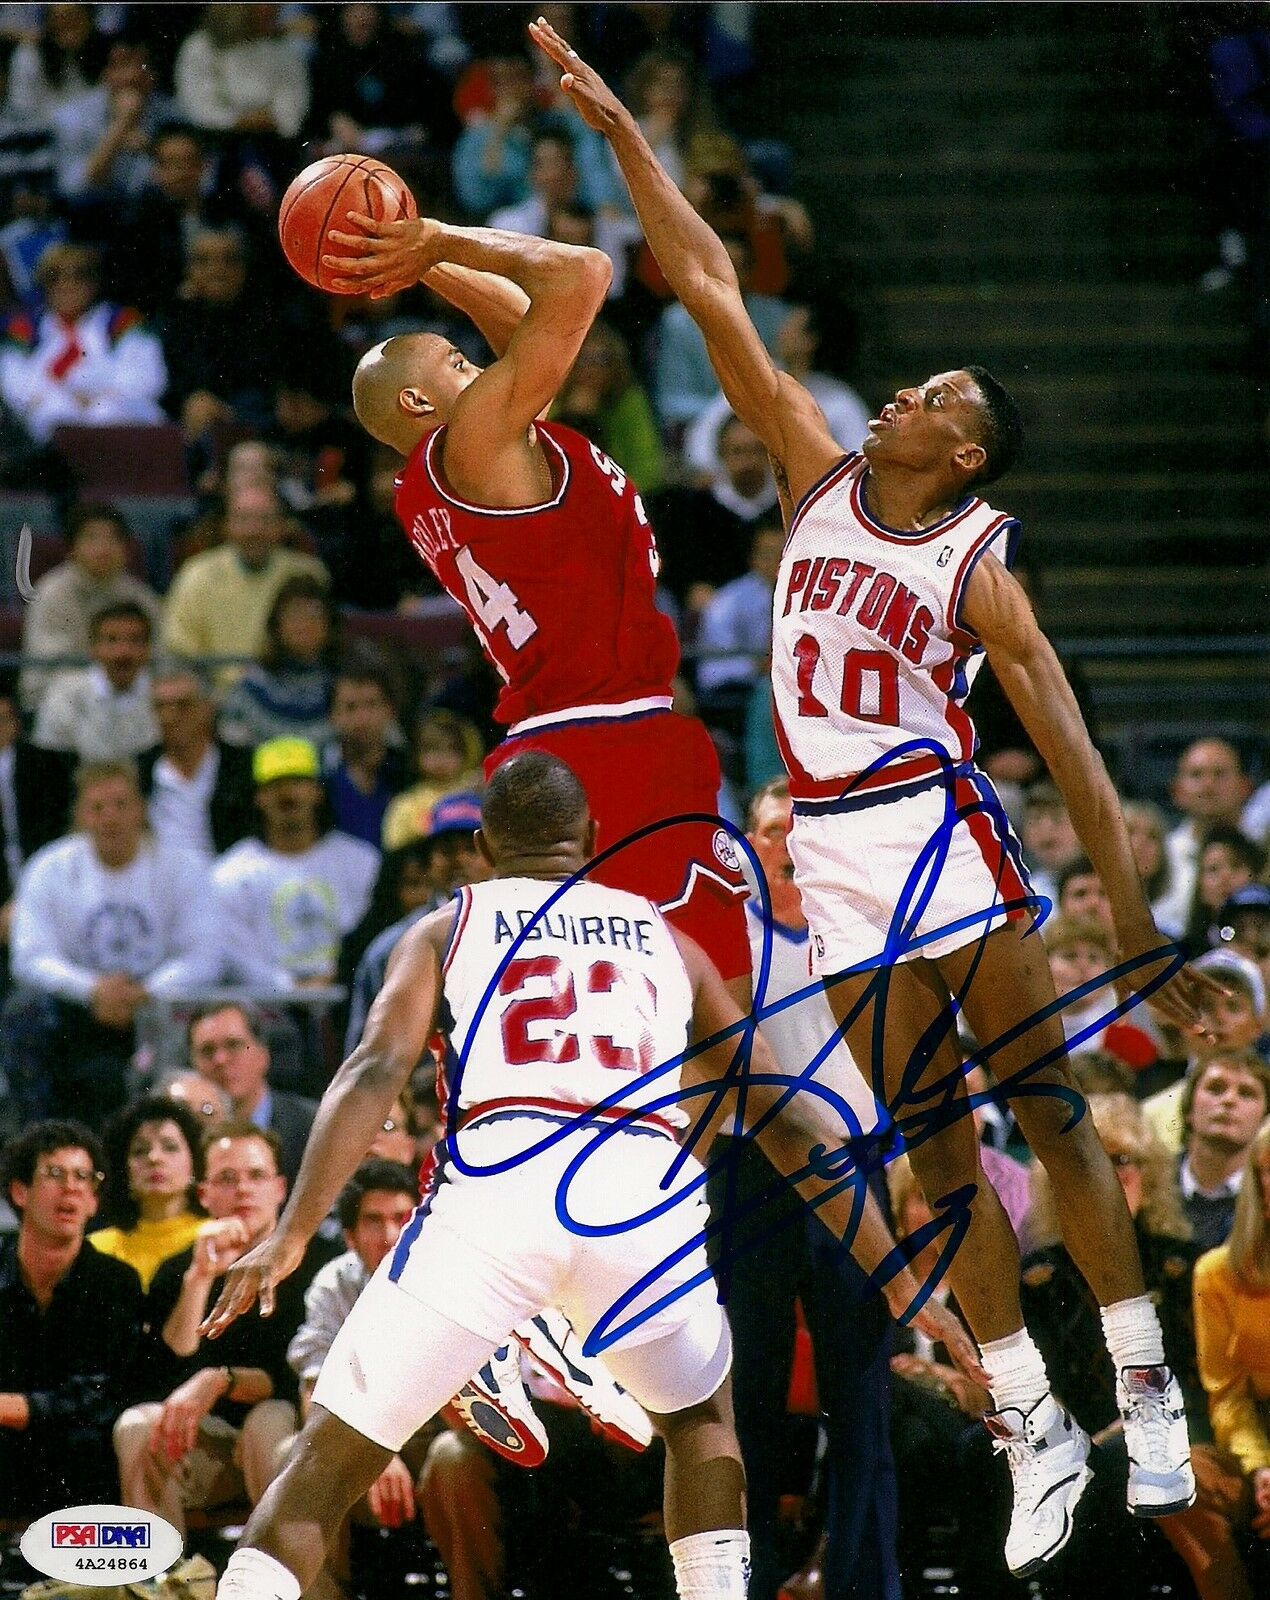 Dennis rodhomme signed pistons 8x10 photo psa dna coa autographed charles barkley